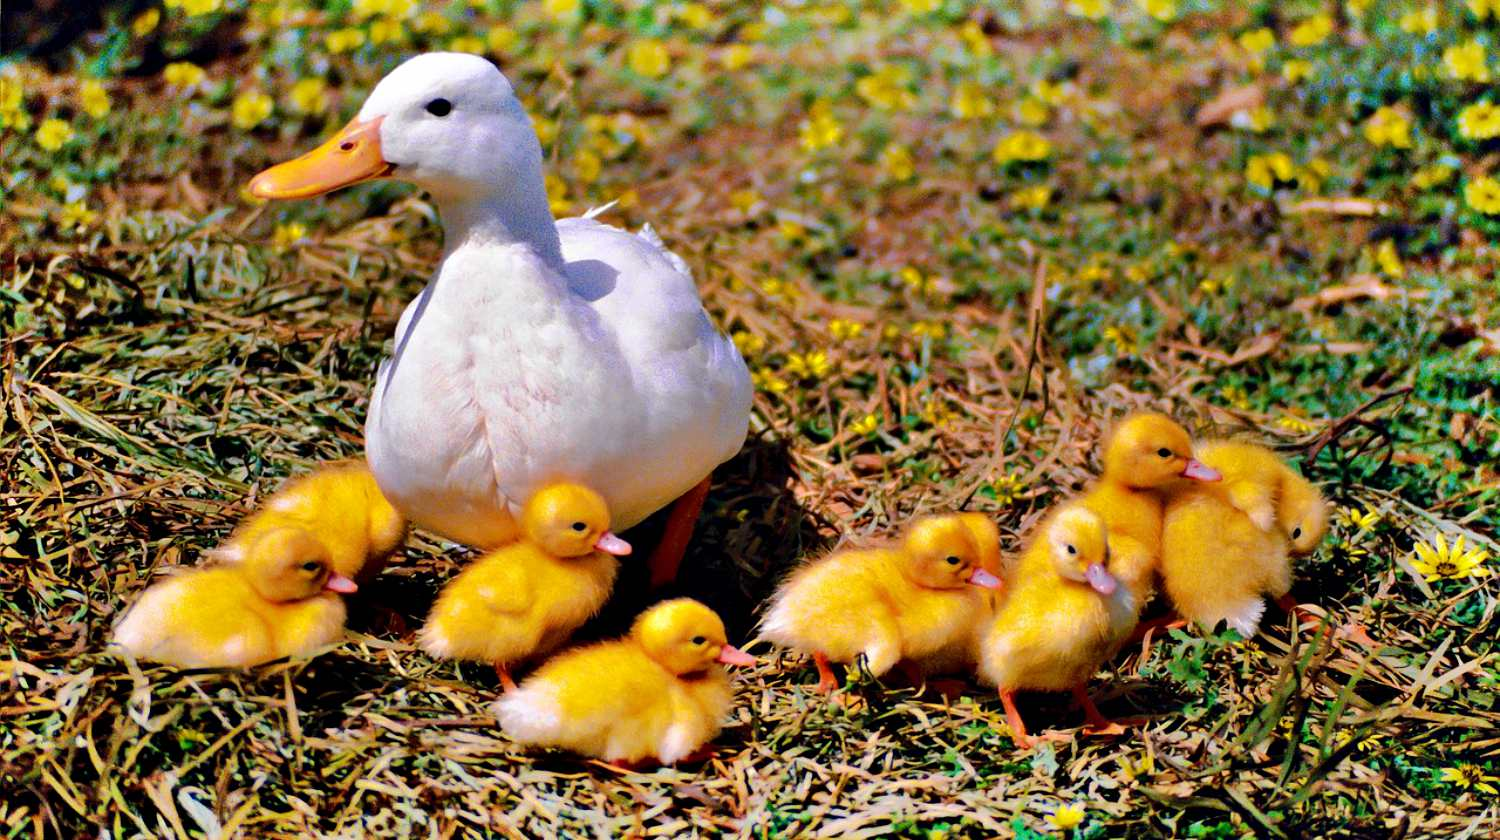 Feature | Duck with little ducklings | Chicken And Duck Keeping | Top Natural Remedies For Your Sick Flock